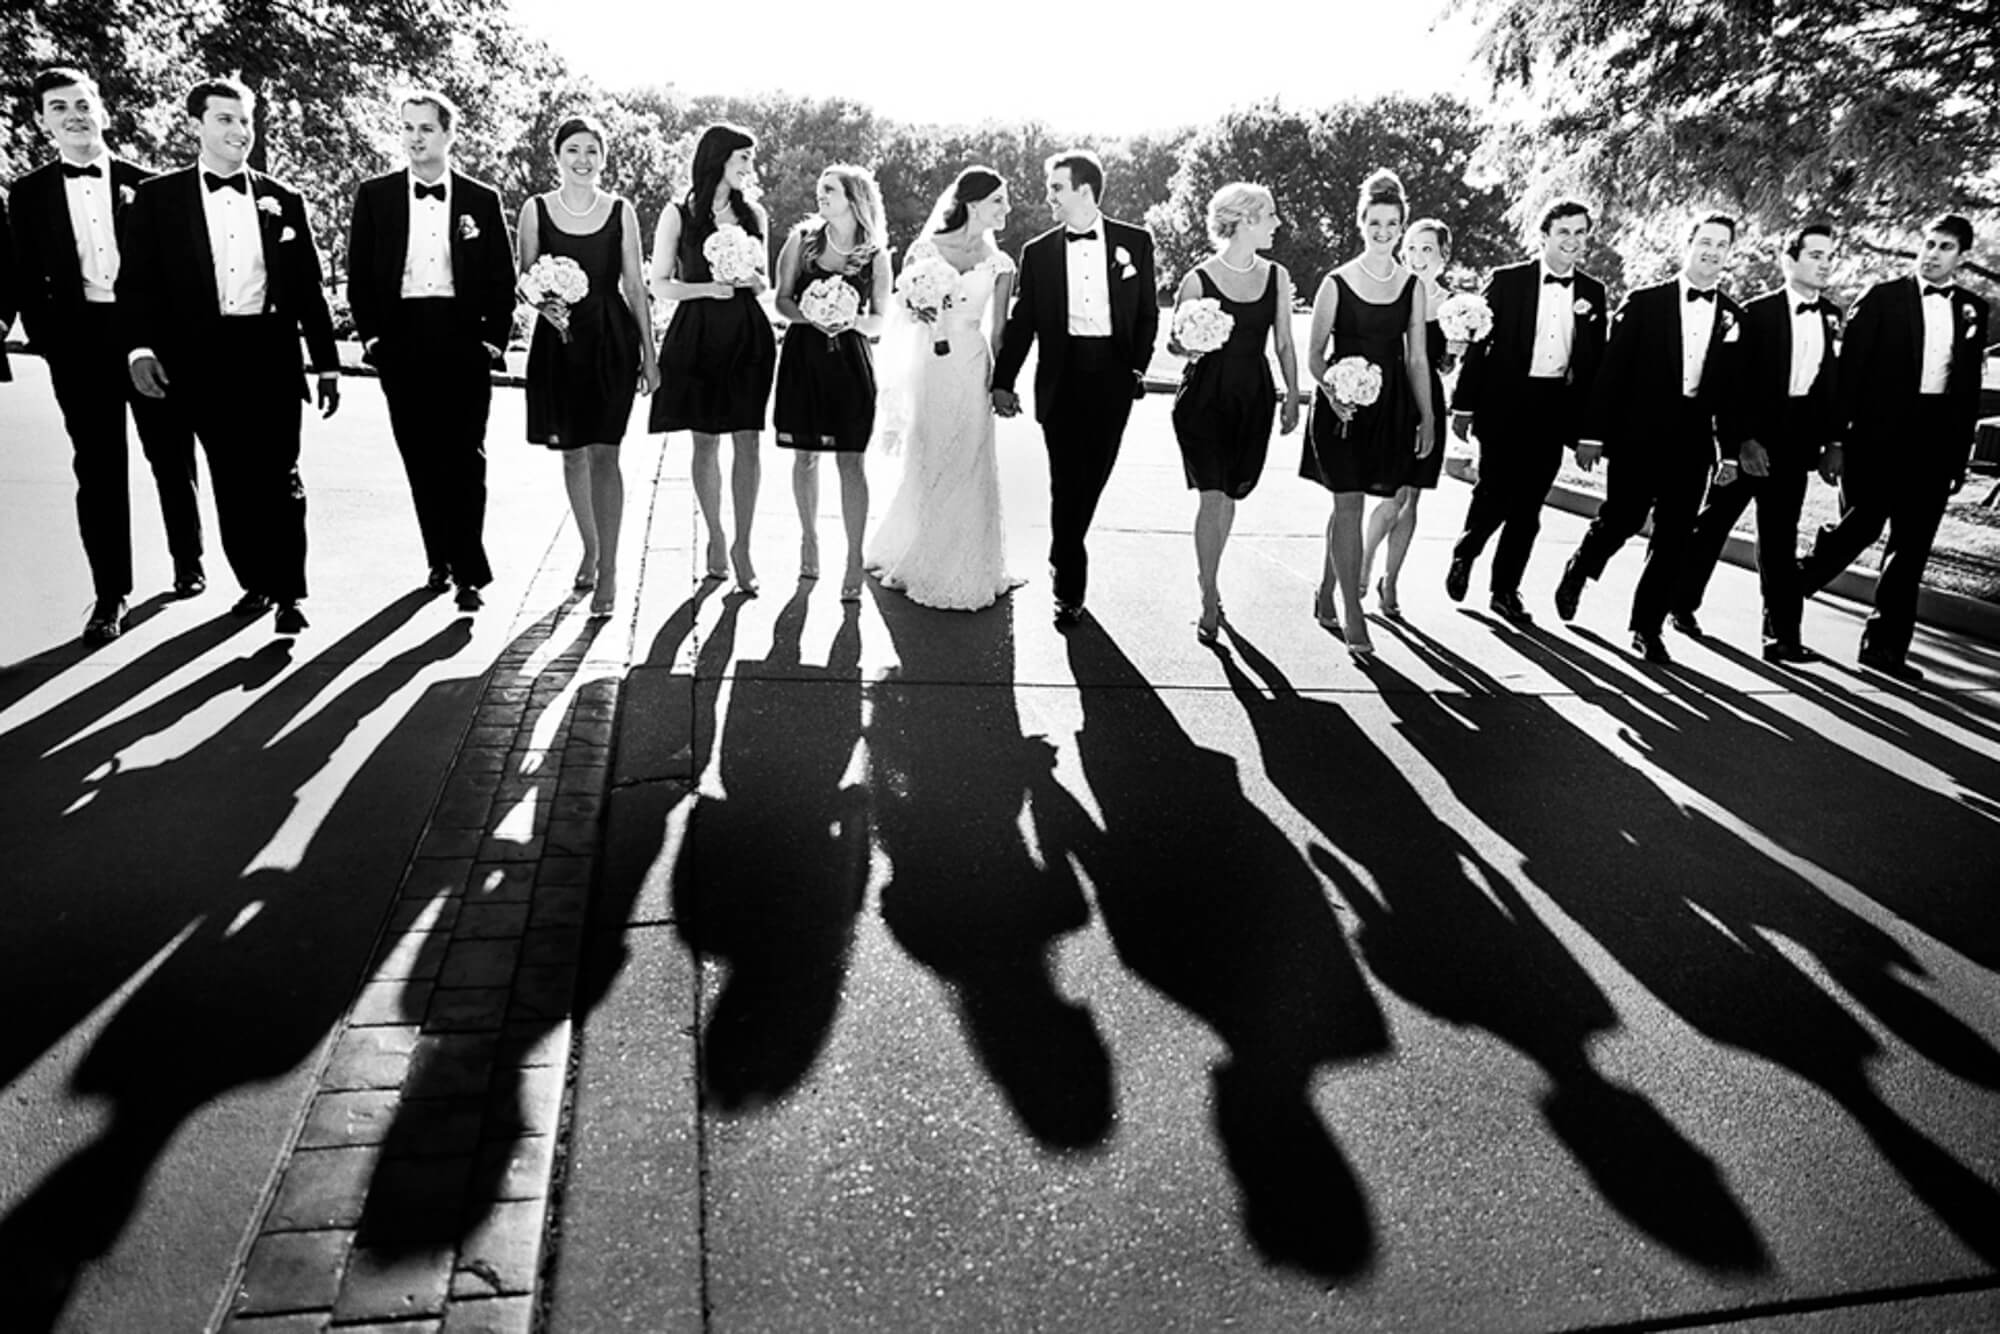 36-bridal-party-silhouette-old-warson-country-club-st-louis.jpg